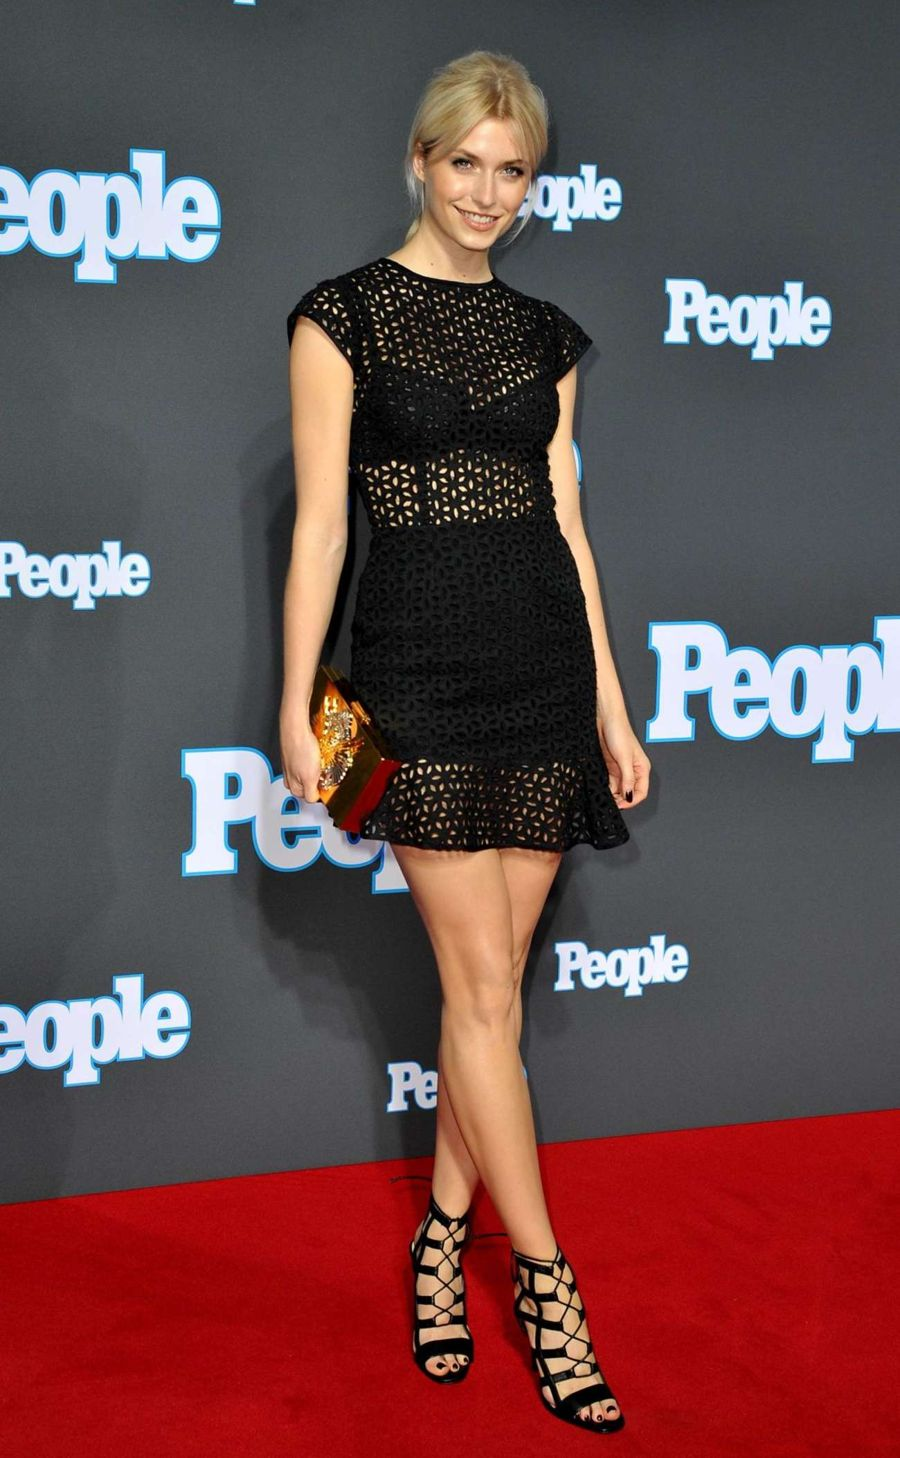 Lena Gercke People Magazine Launch Party In Berlin Page